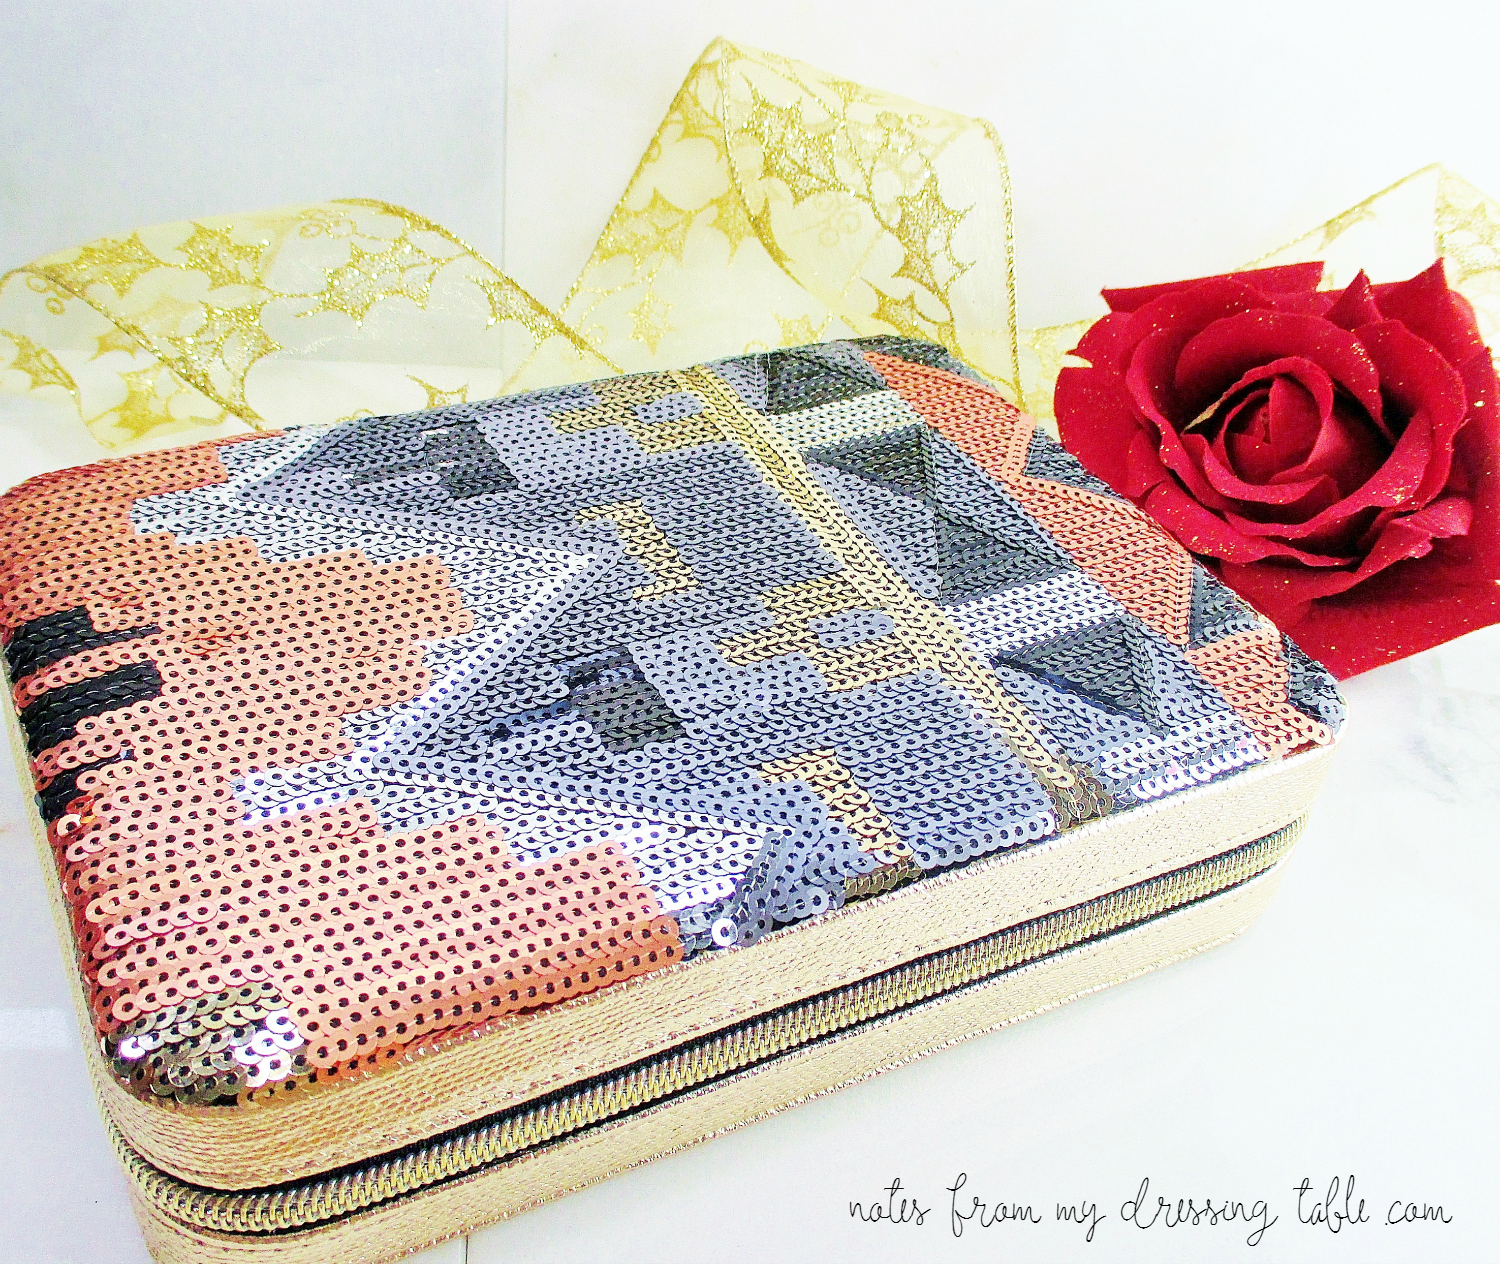 Tarte Light of the Party Collectors Makeup Case Review notesfrommydressingtable.com